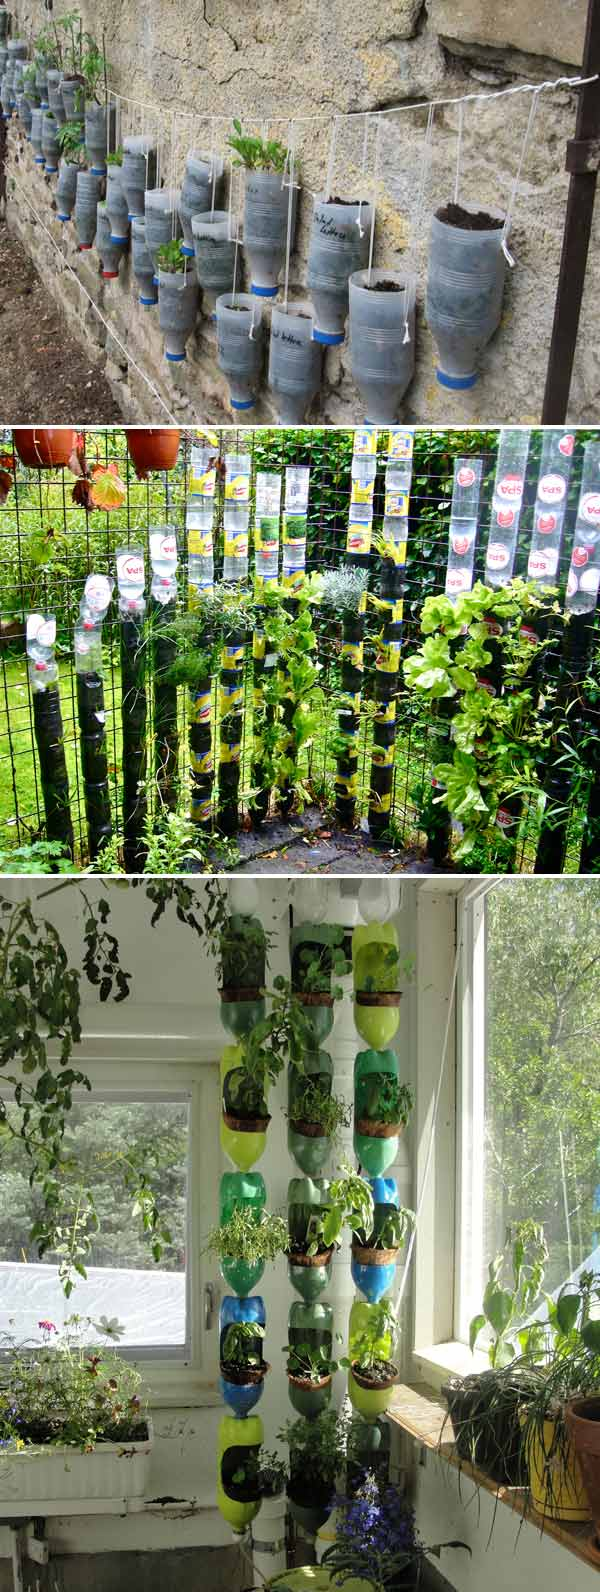 recycled plastic bottles can create surprisingly vertical gardens